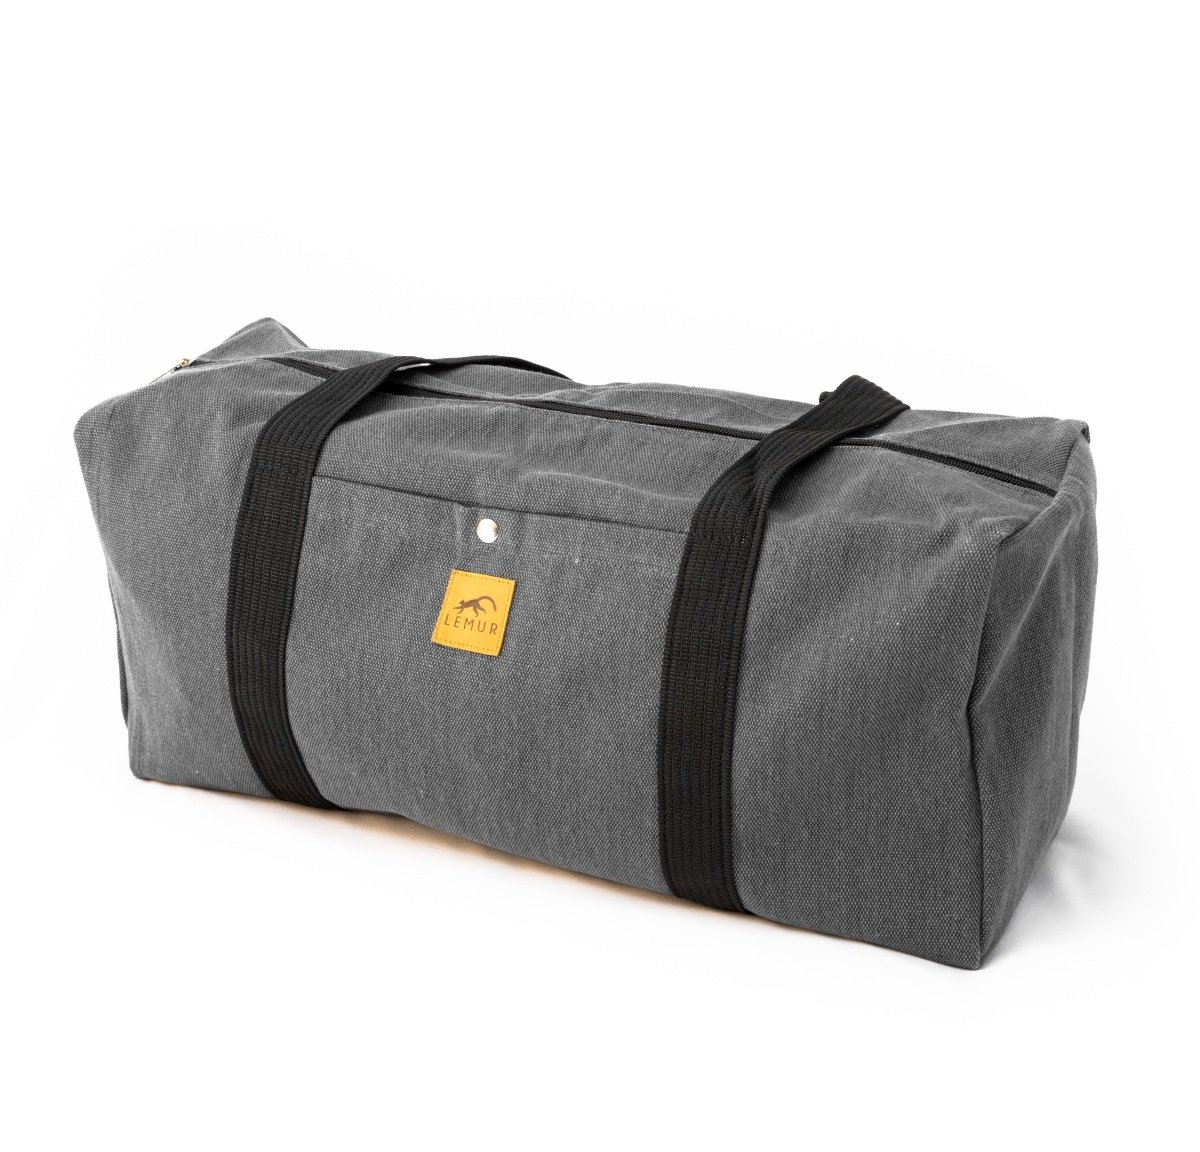 Canvas Duffel Bag - 20 Liter Gym Tote, Foldable Overnight Travel Weekend Luggage by Lemur Bags (Stone Gray)